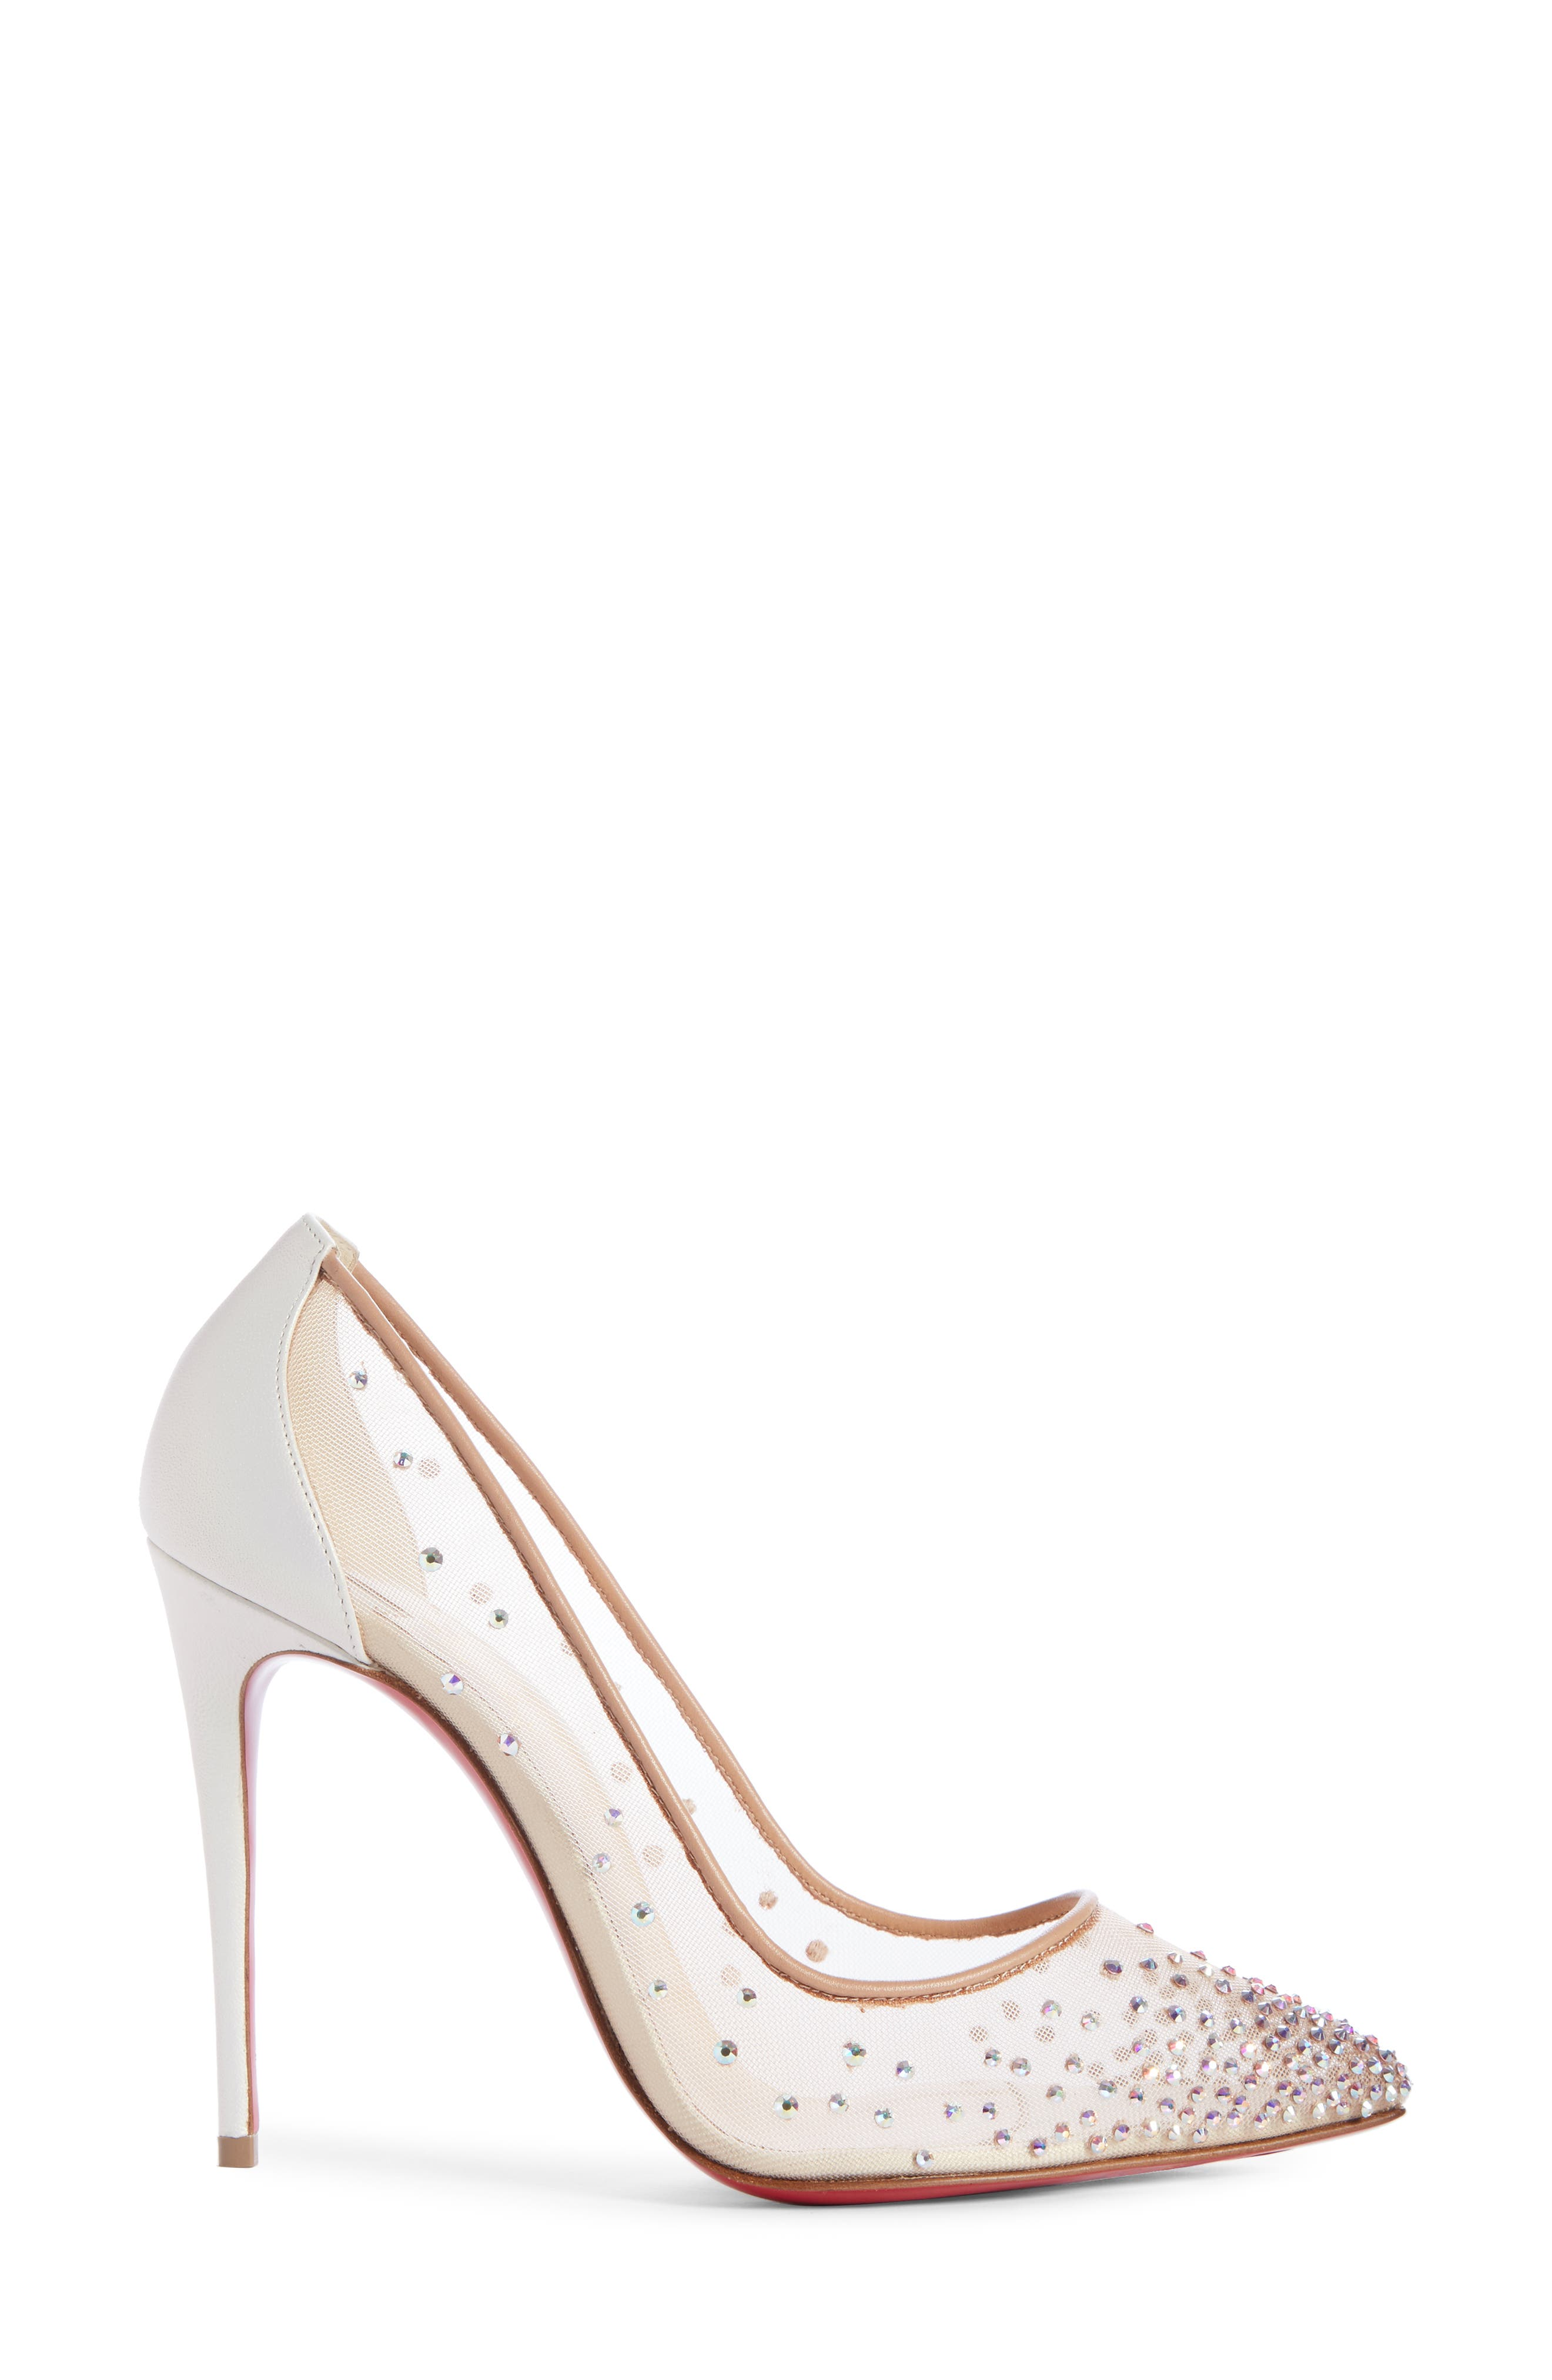 Follies Strass Pointy Toe Pump,                             Alternate thumbnail 3, color,                             SNOW/ NUDE